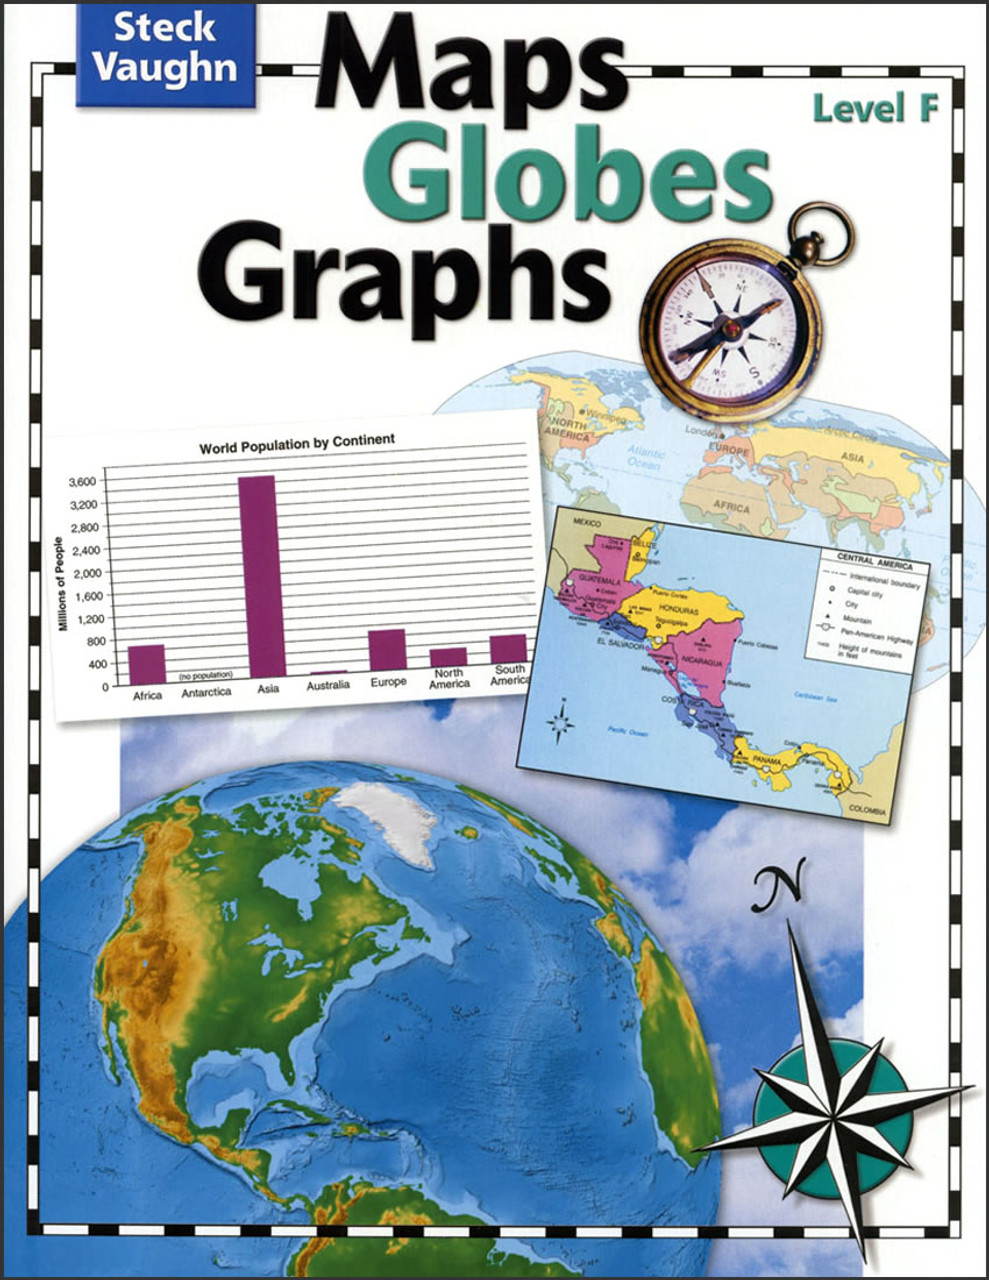 Maps, Globes, Graphs: Level F